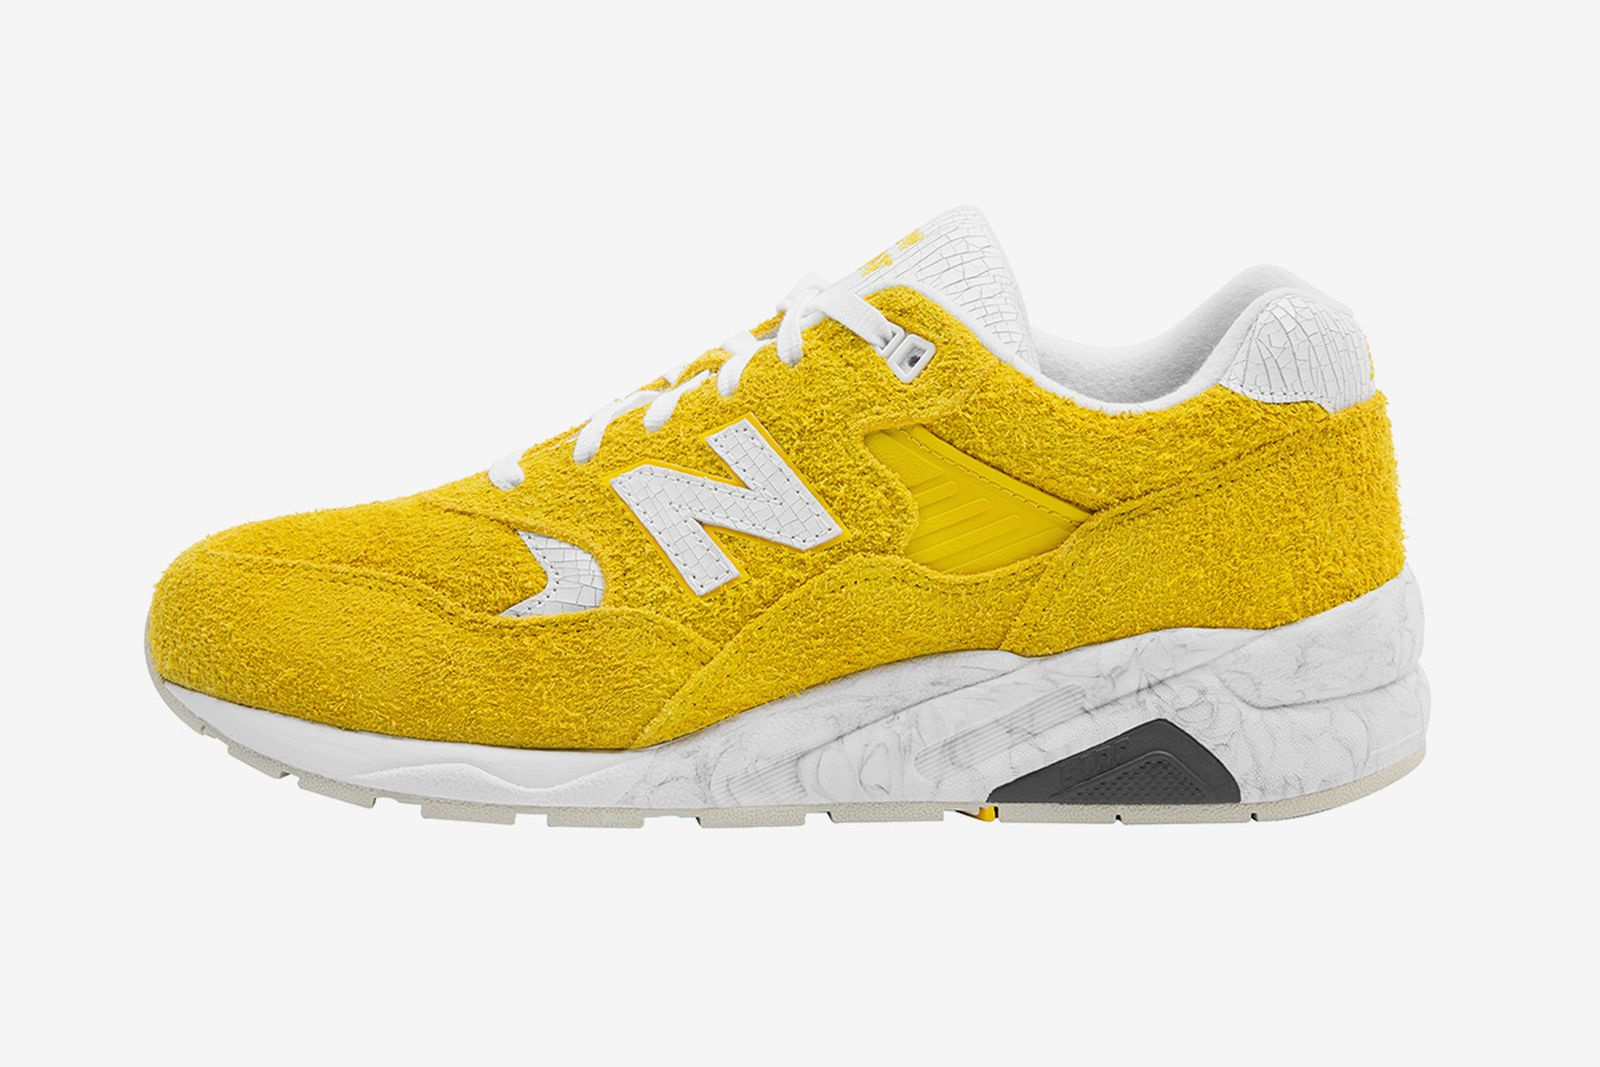 randomevent x new balance 580 release date price